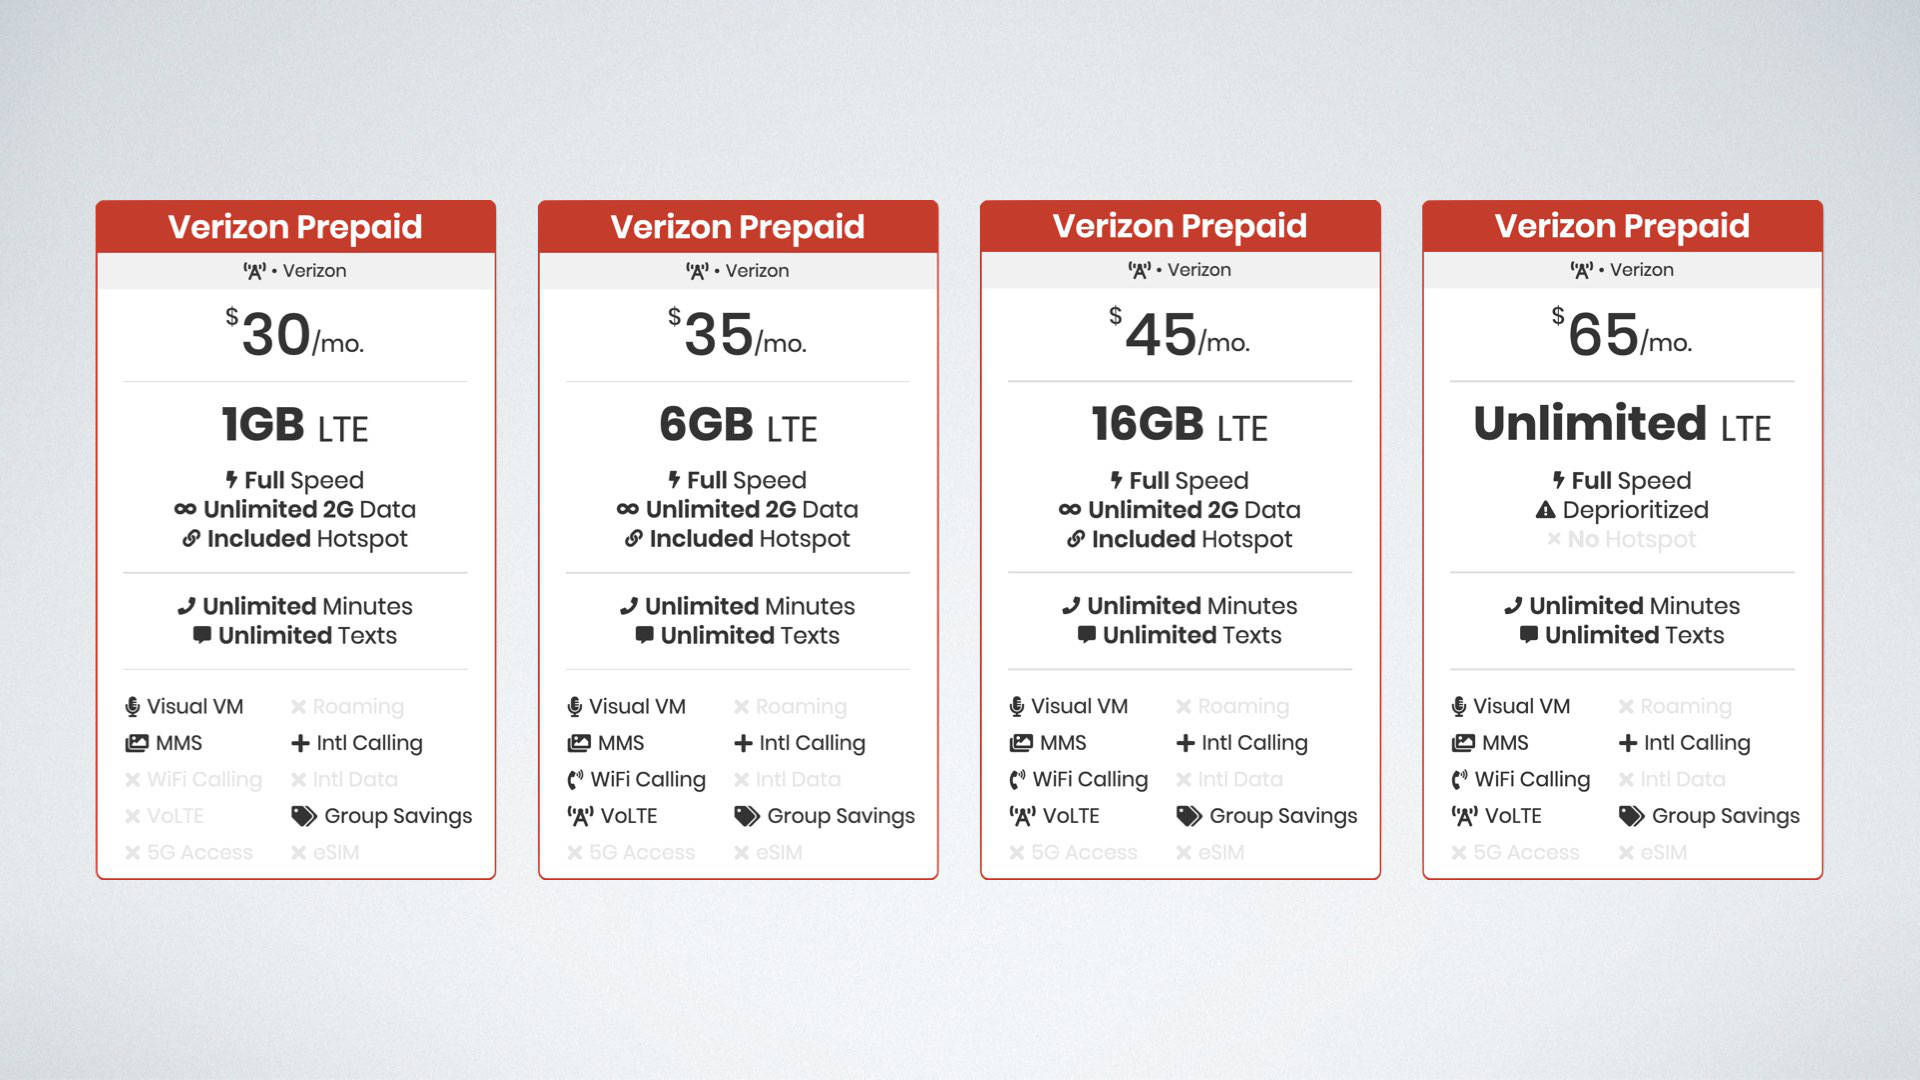 Verizon's previously available prepaid plans